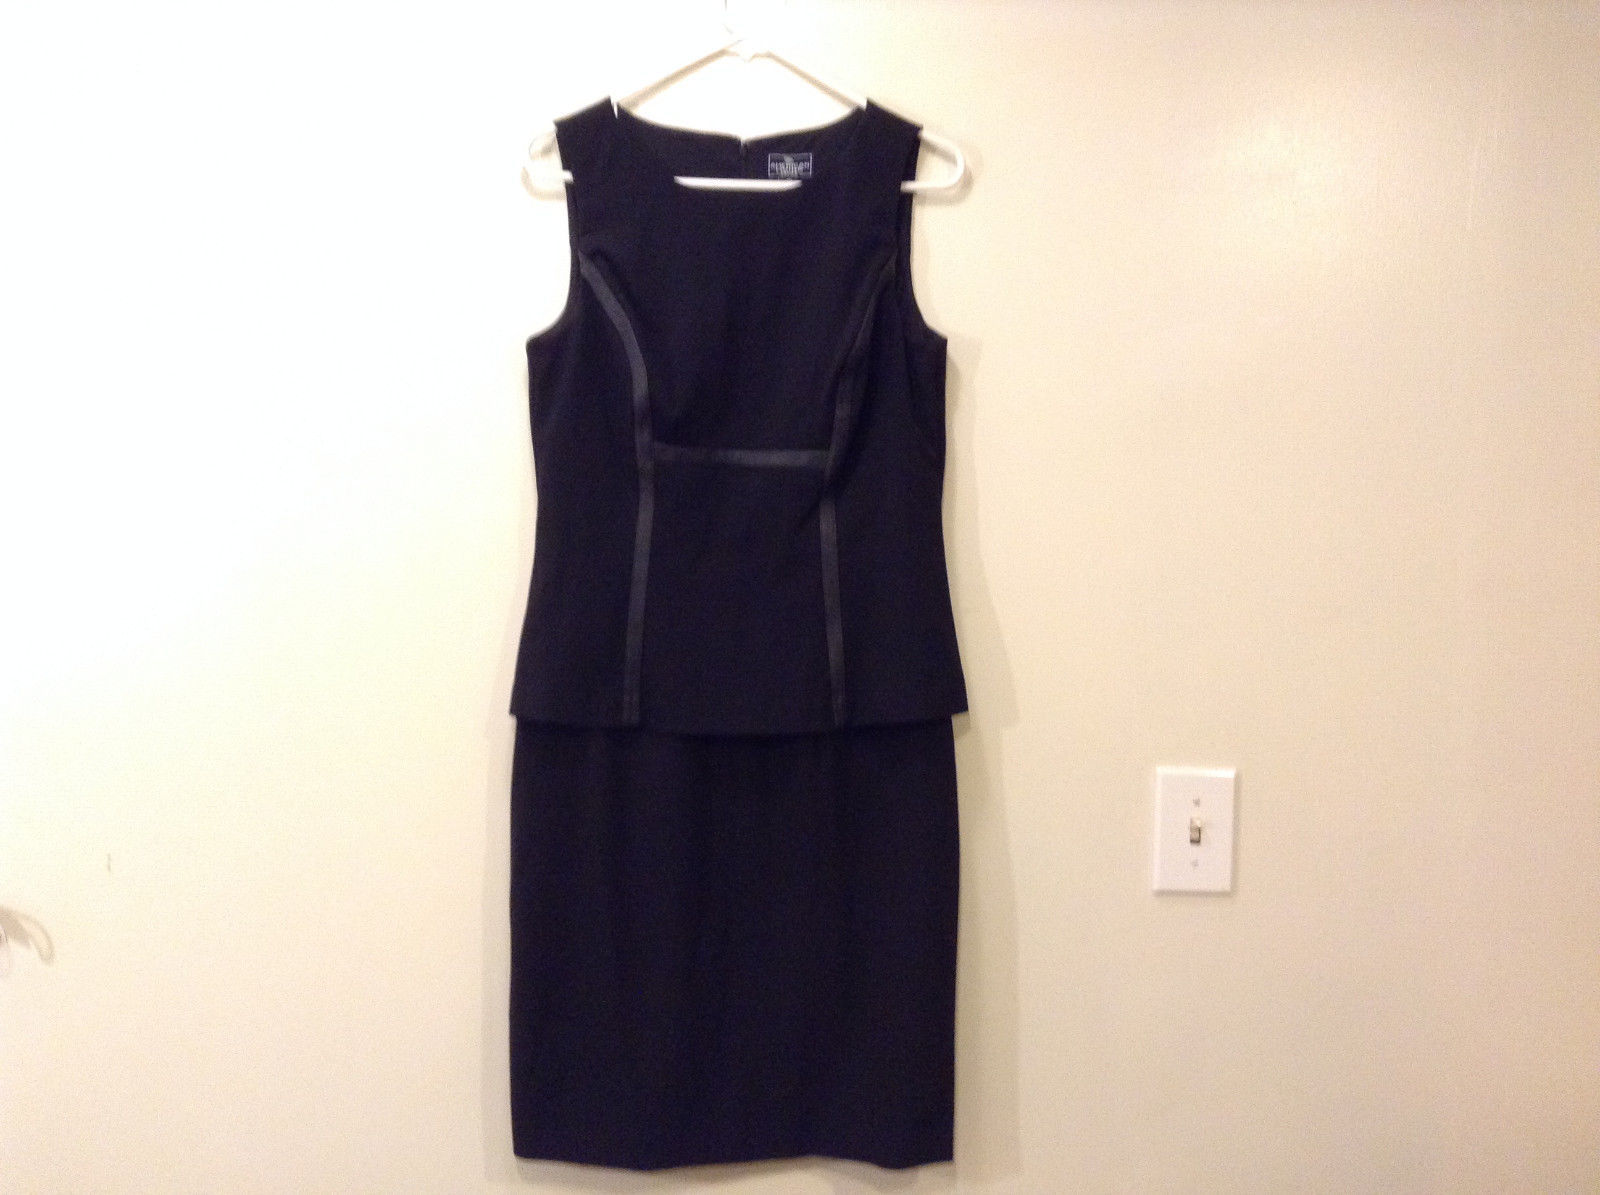 American Living Sleeveless Black dress with Faux Leather trim, size 10